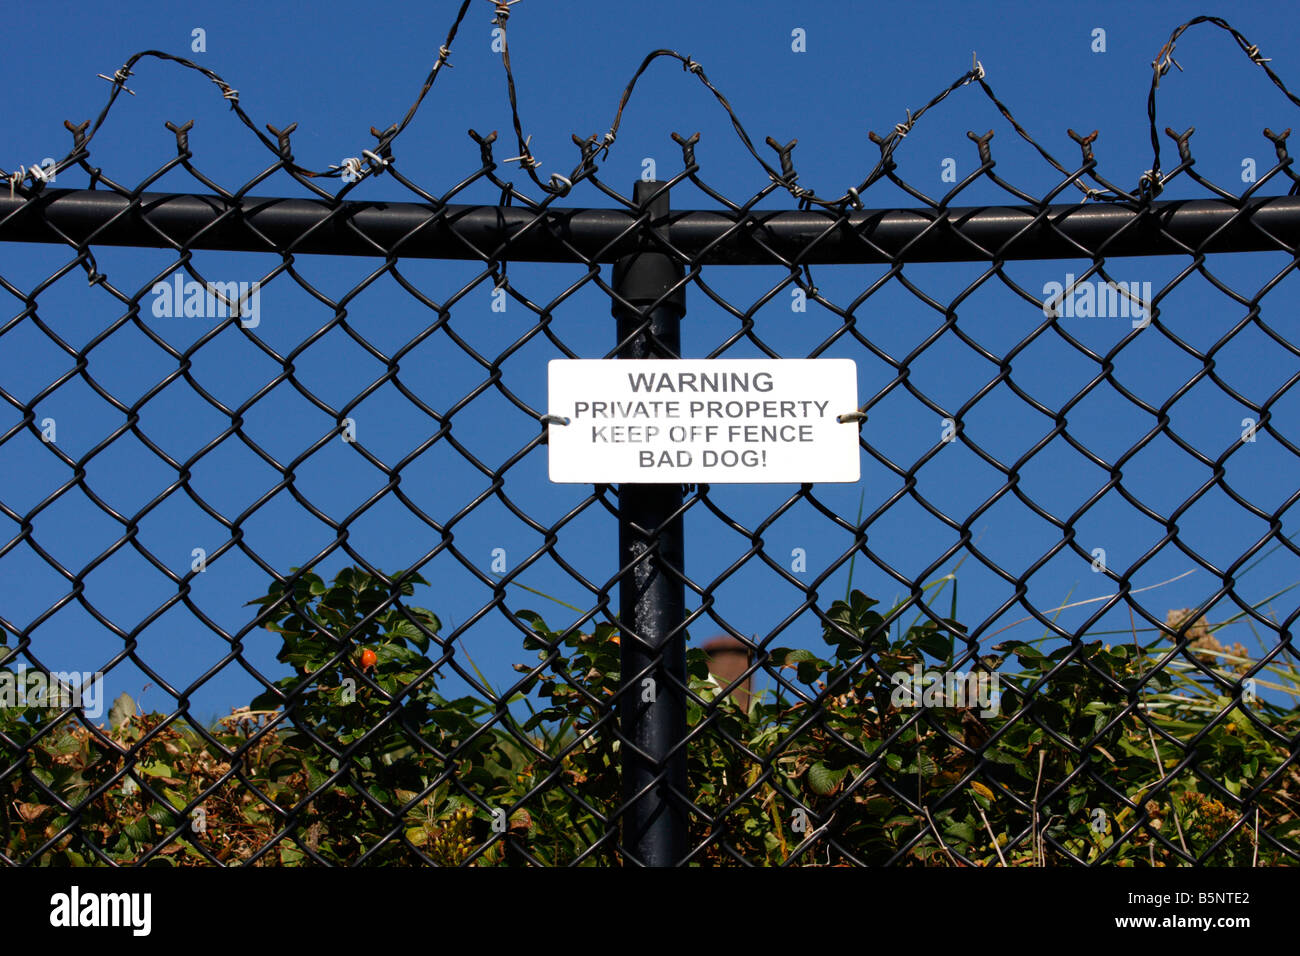 Dog And Barbed Wire Stock Photos & Dog And Barbed Wire Stock Images ...